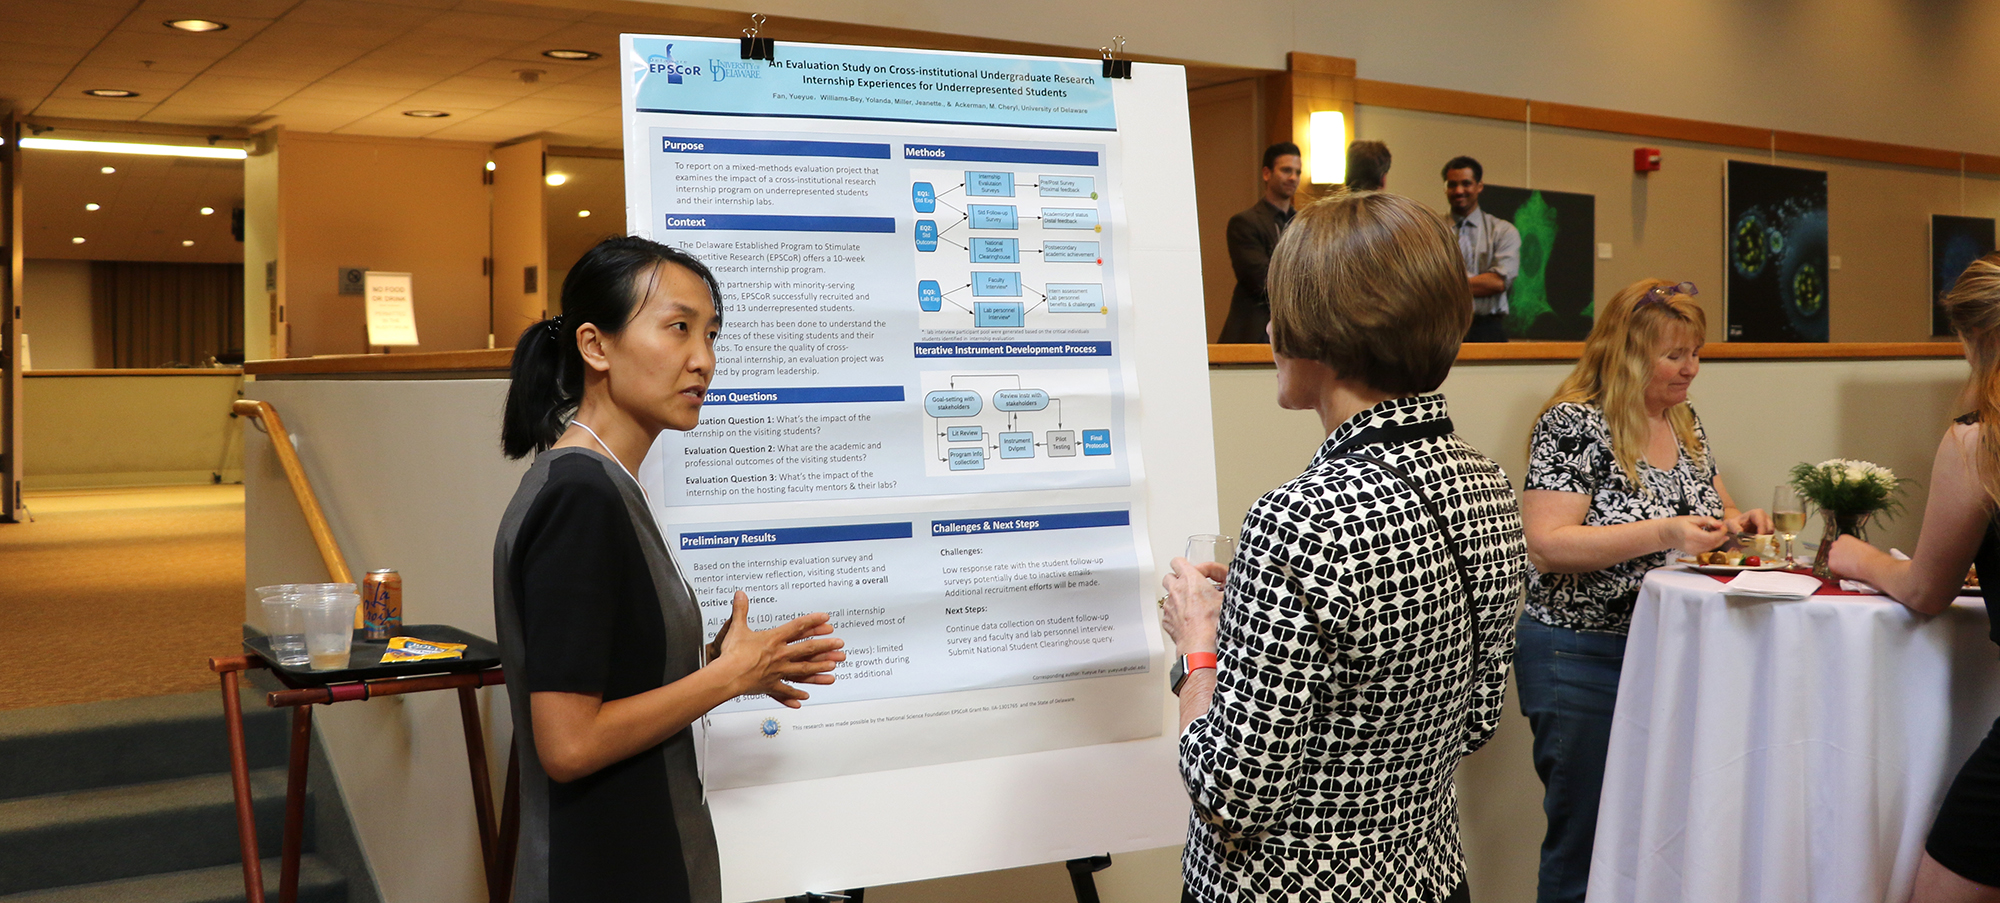 Dean Carol Vukelich reviews a research poster at the Steele Symposium